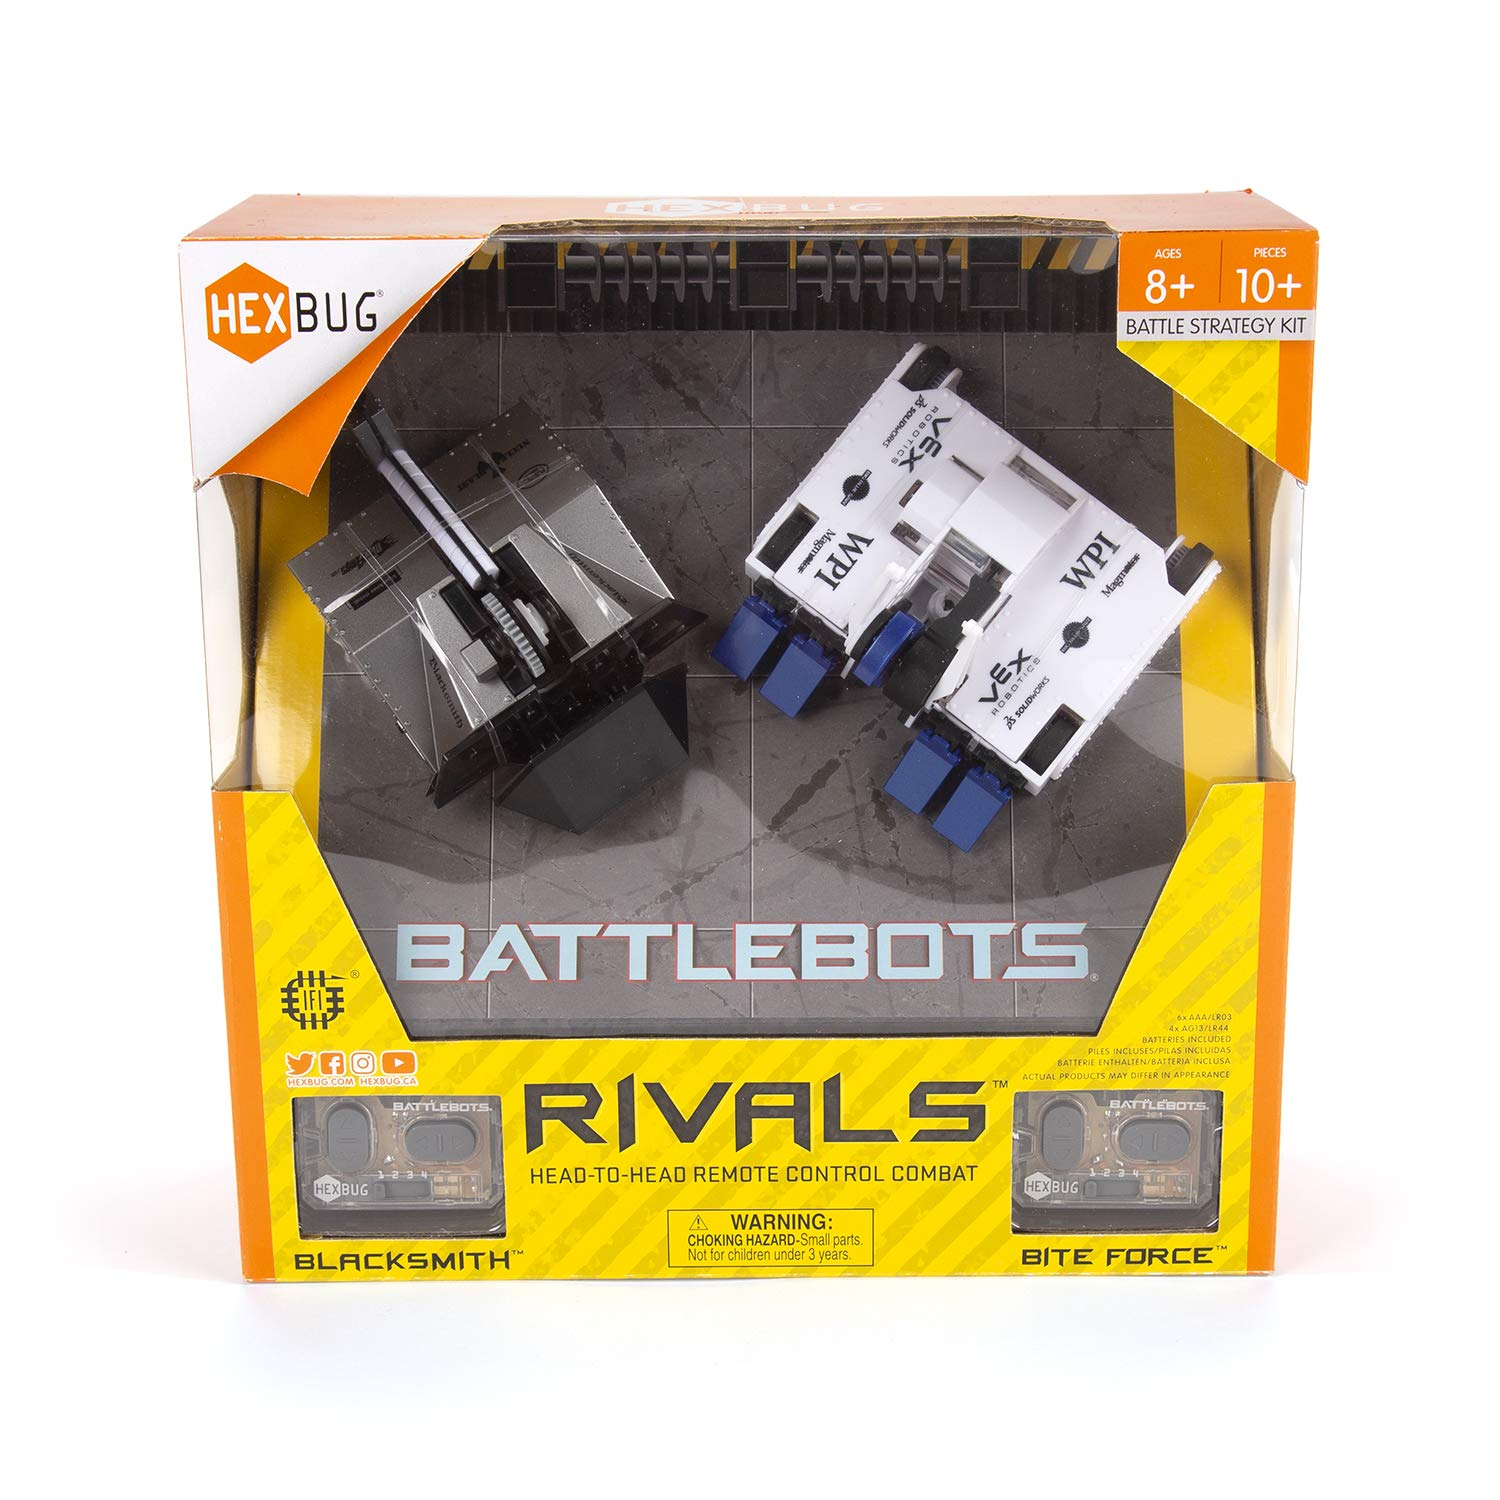 HEXBUG BattleBots Rivals 4.0 (Blacksmith and Biteforce) Toys for Kids, Fun Battle Bot Hex Bugs Black Smith and Bite Force by HEXBUG (Image #3)